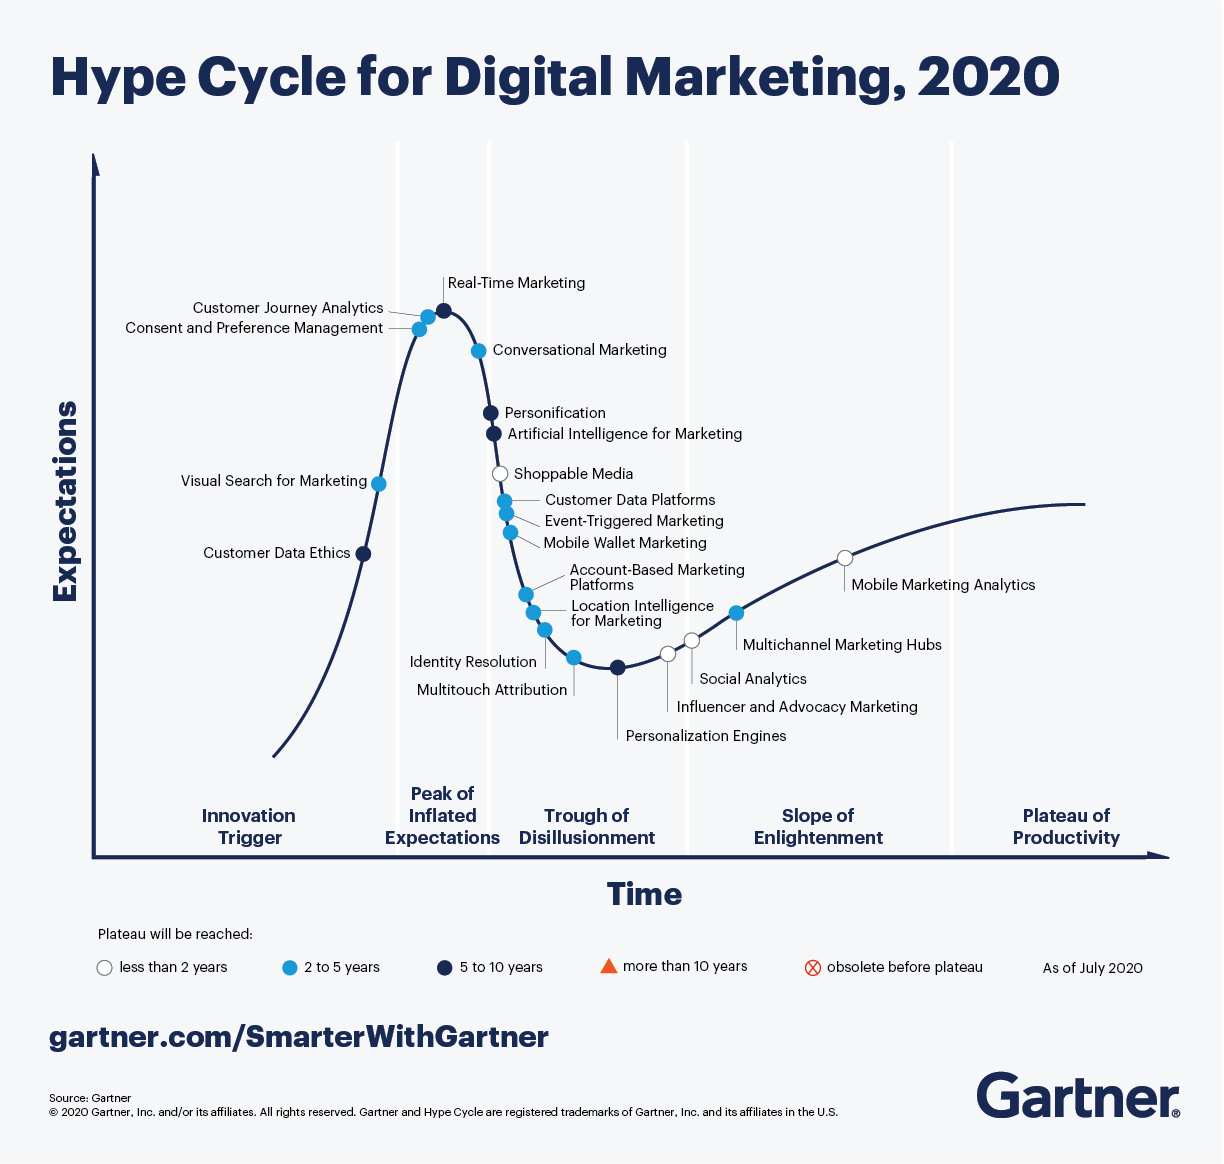 Gartner Hype Cycle for Digital Marketing, 2020 highlights digital marketing technologies that have the capability to transform how marketers respond to changing conditions.